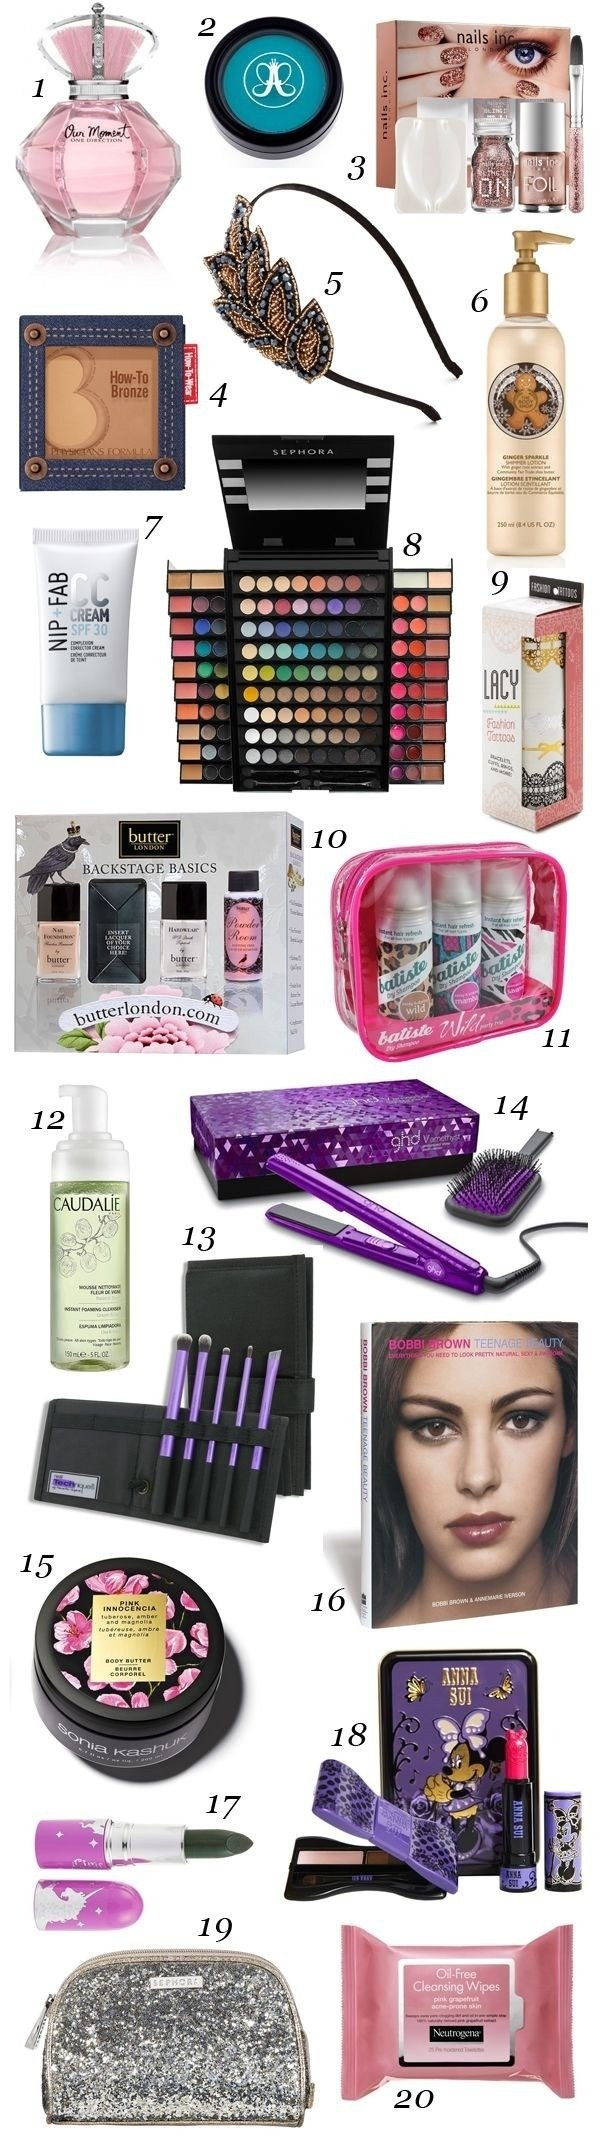 10 Fashionable Gift Ideas For 16 Year Old Daughter